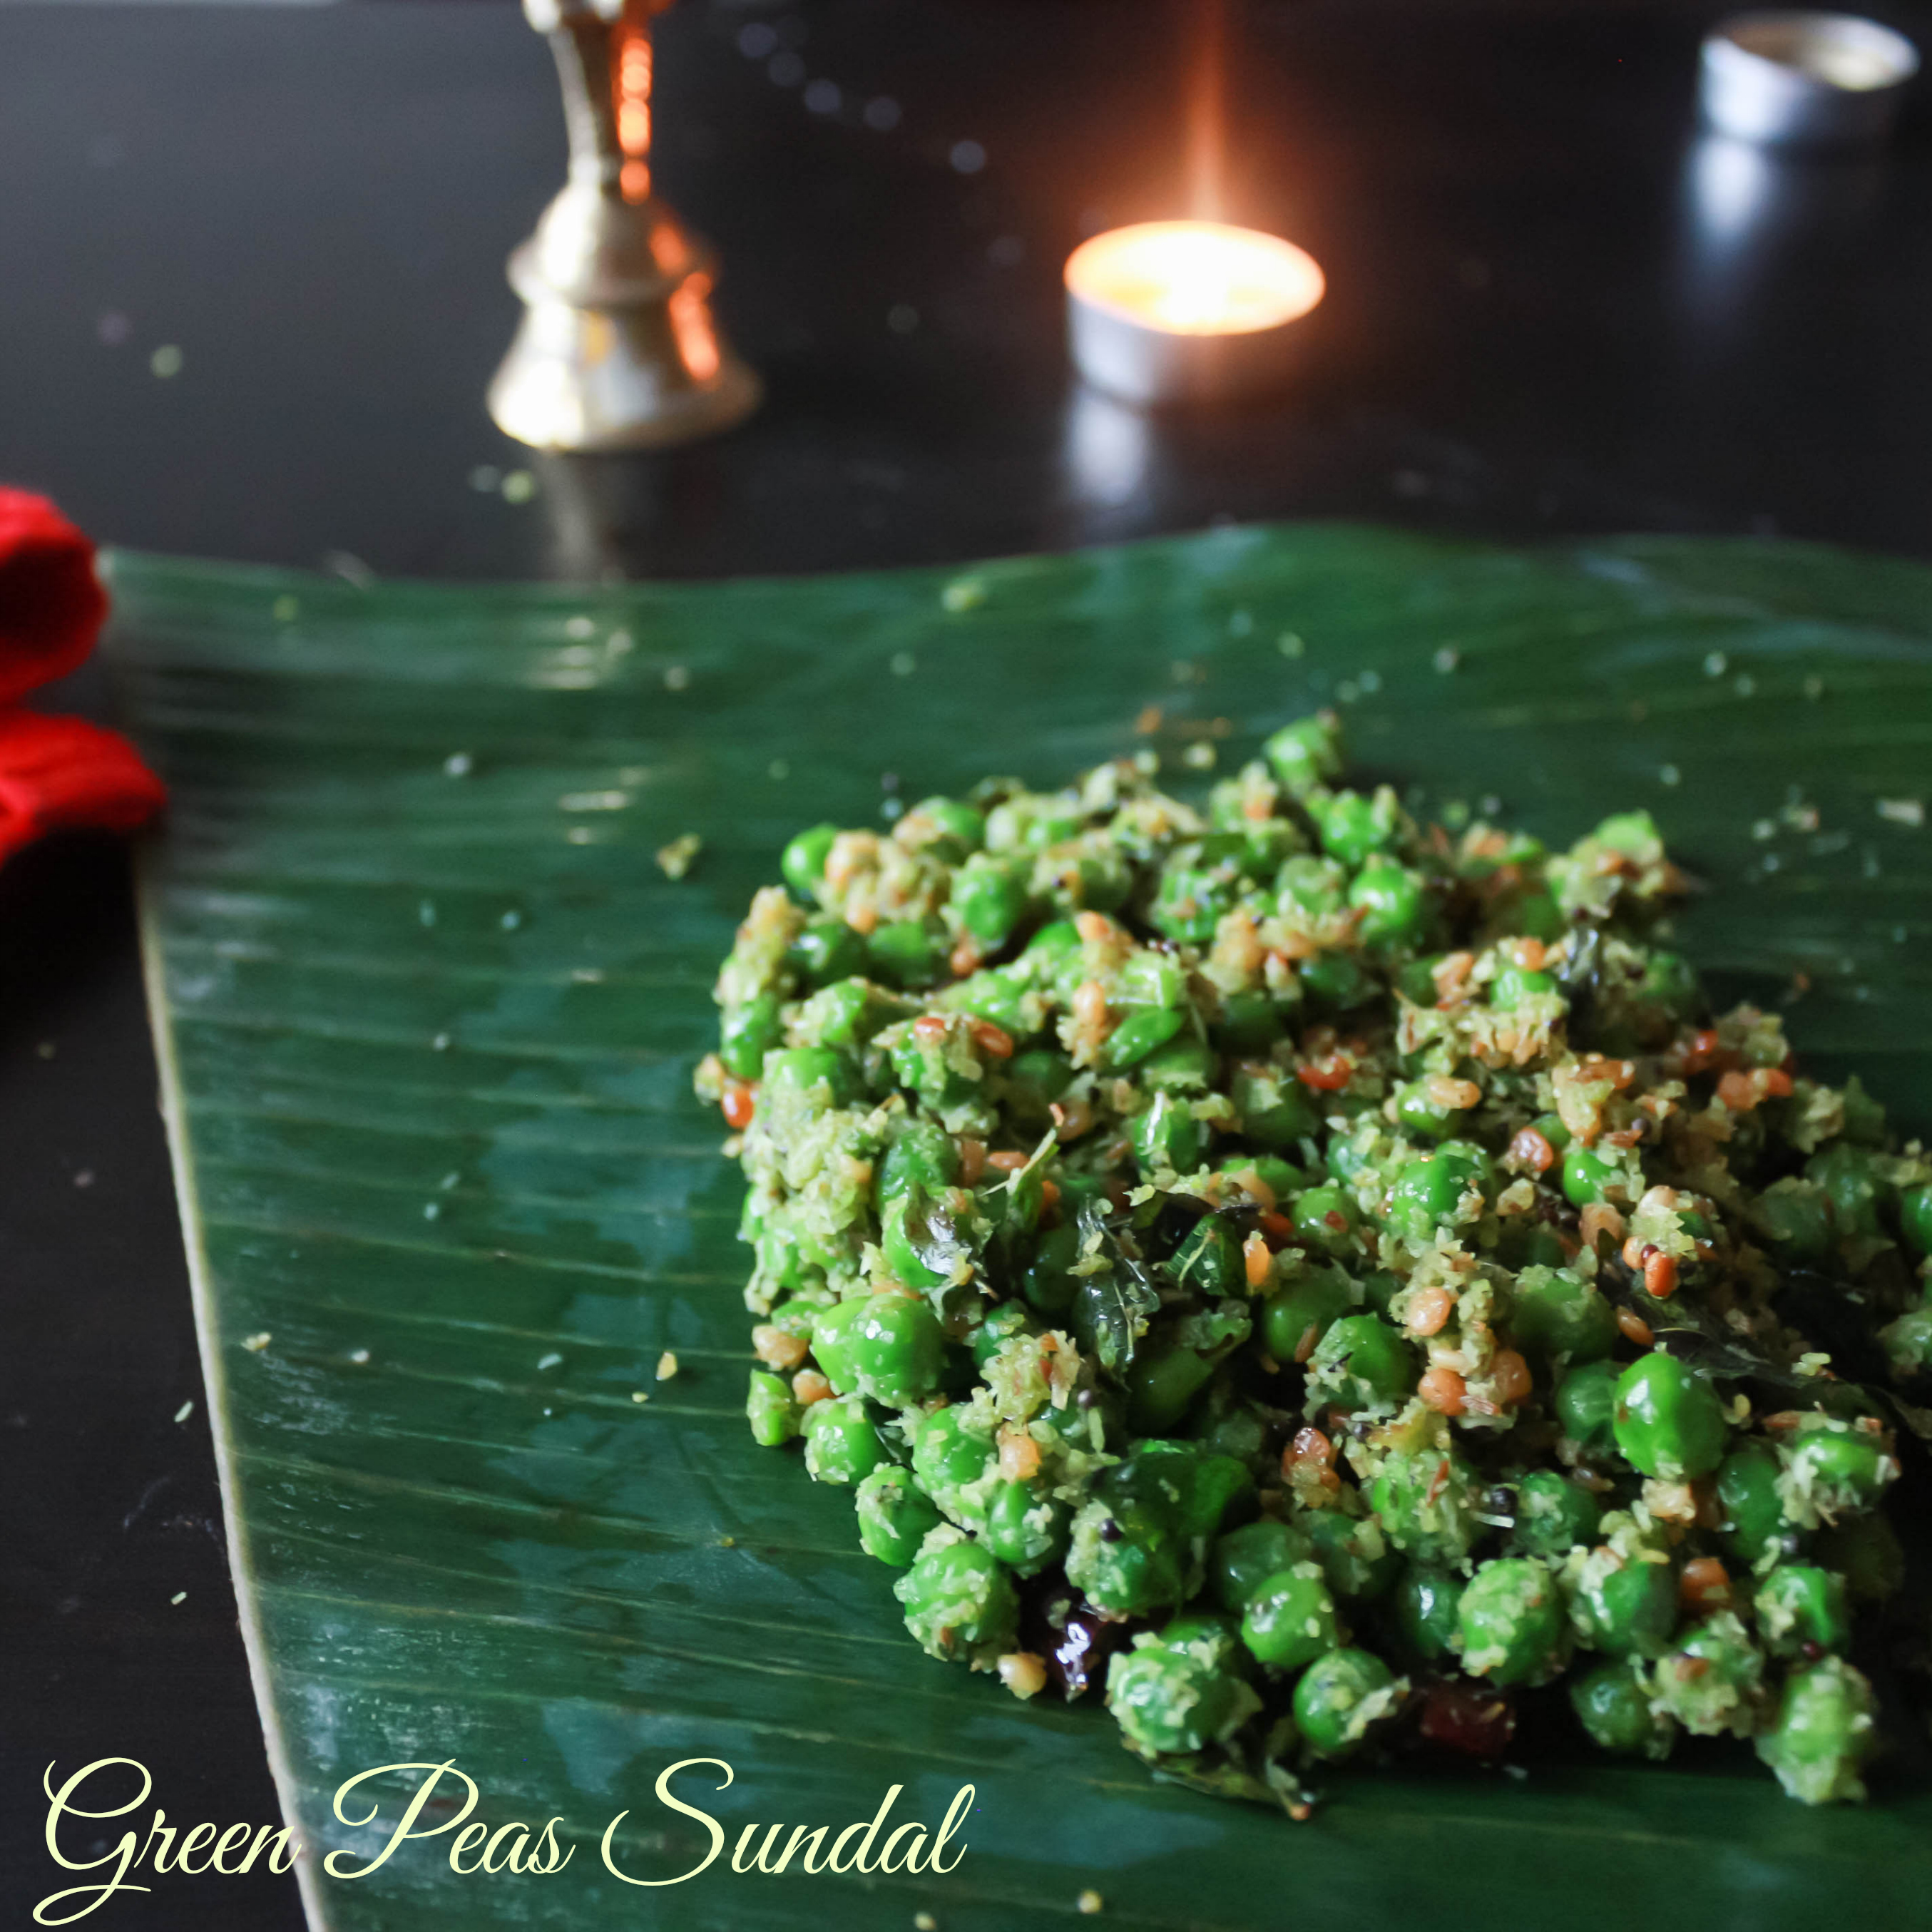 Green_Peas_Sundal_Relishthebite_name1